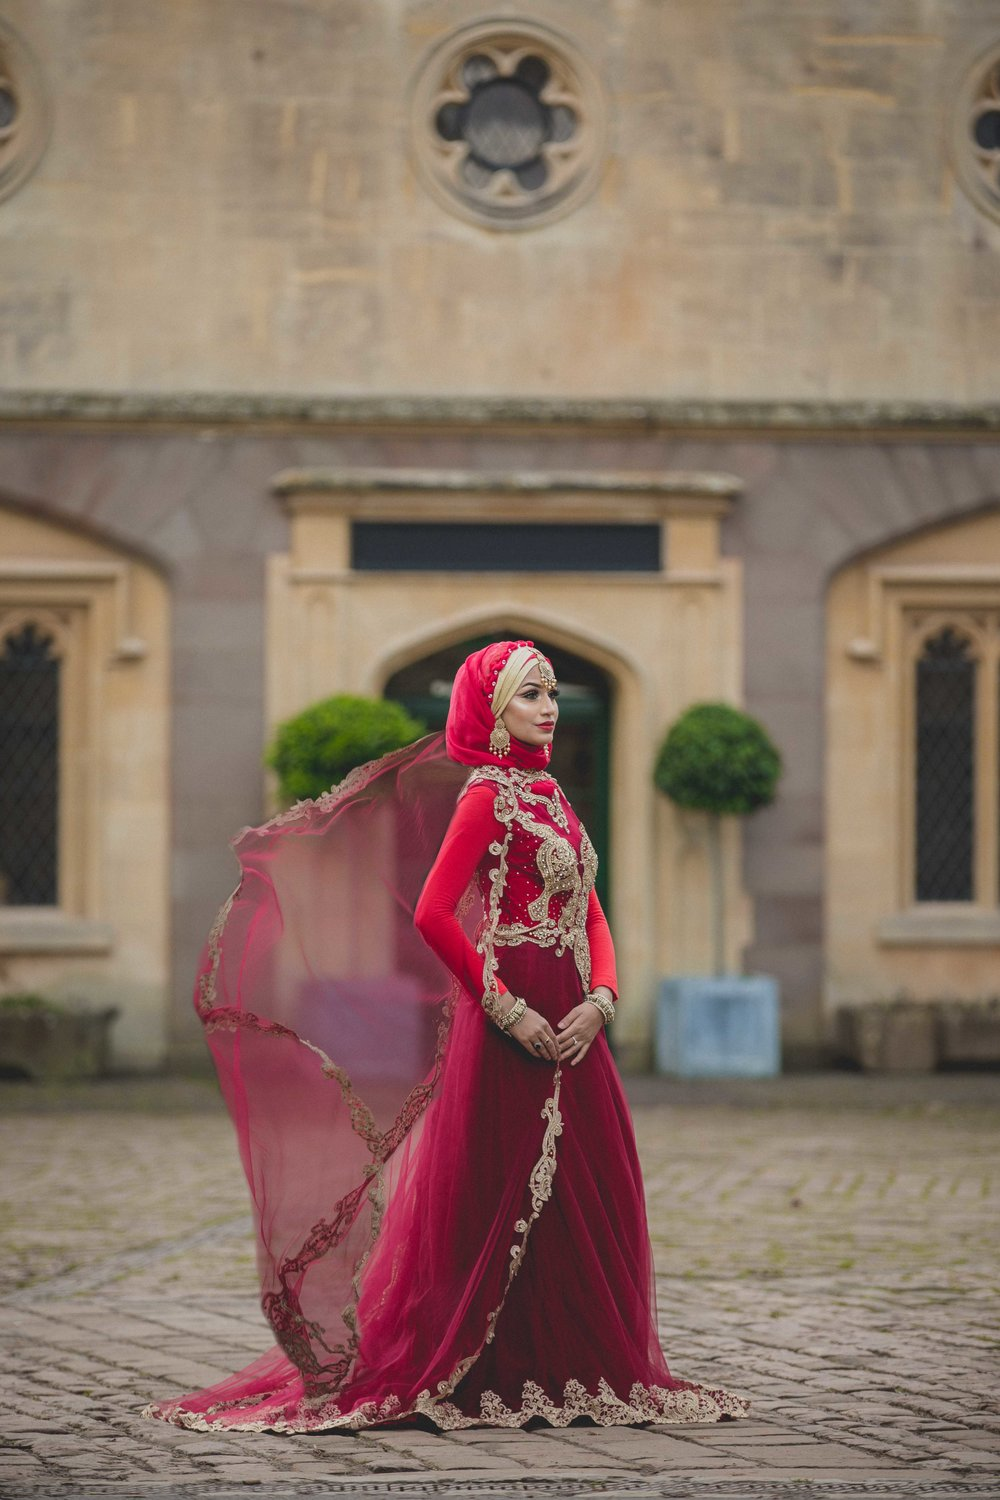 ashton-court-bristol-asian-bride-wedding-modest-street-aisha-rahman-fashion-photography-london-bristol-natalia-smith-photography-15.jpg